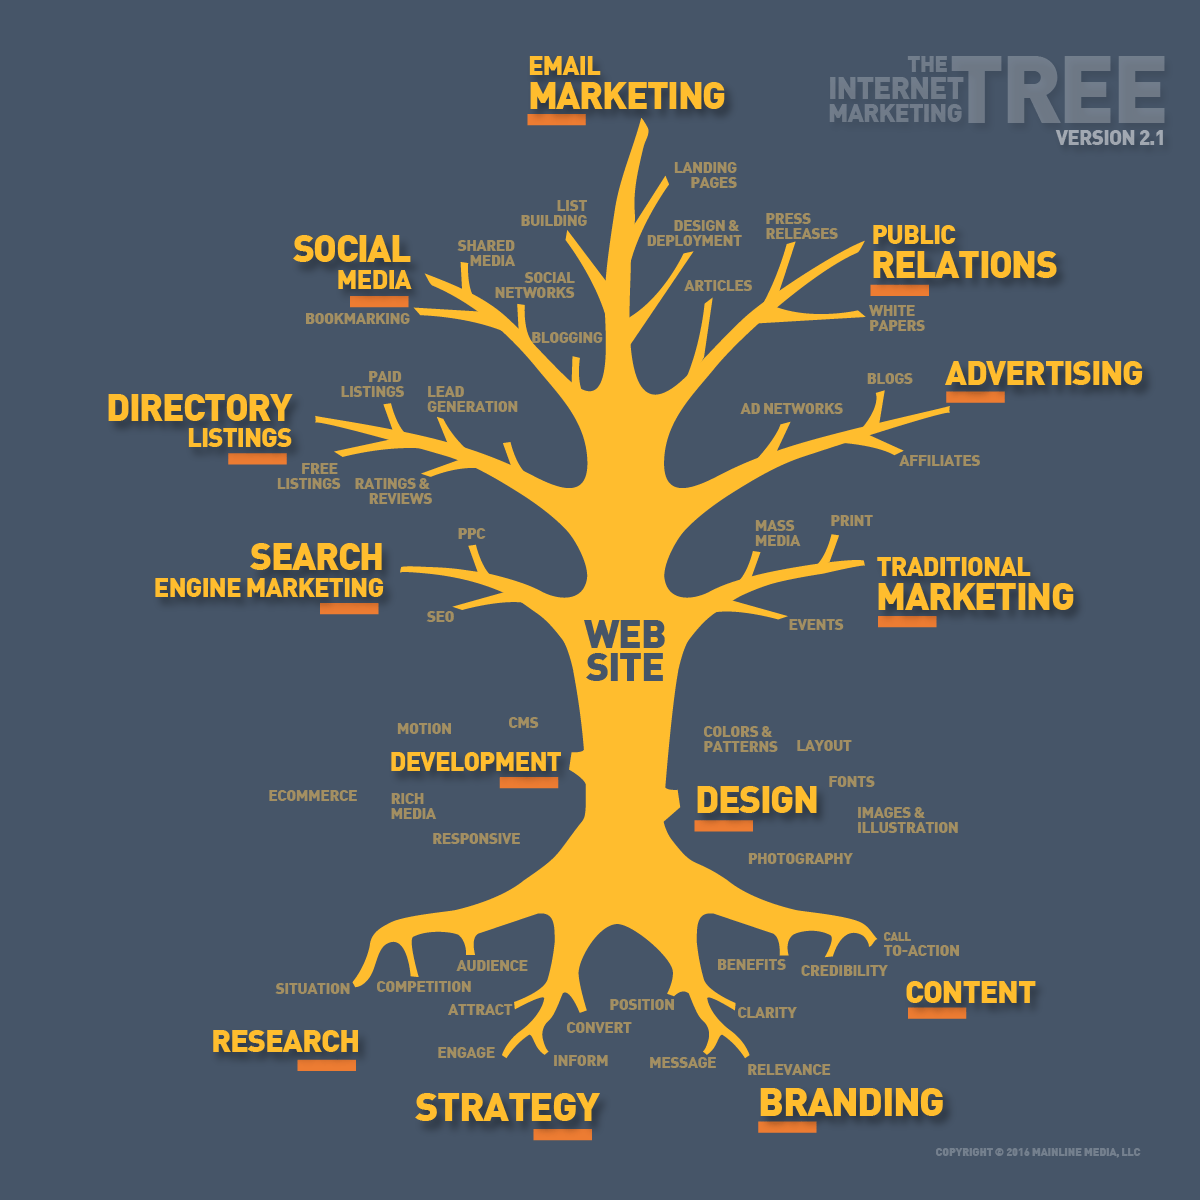 hight resolution of the internet marketing tree 2016 update